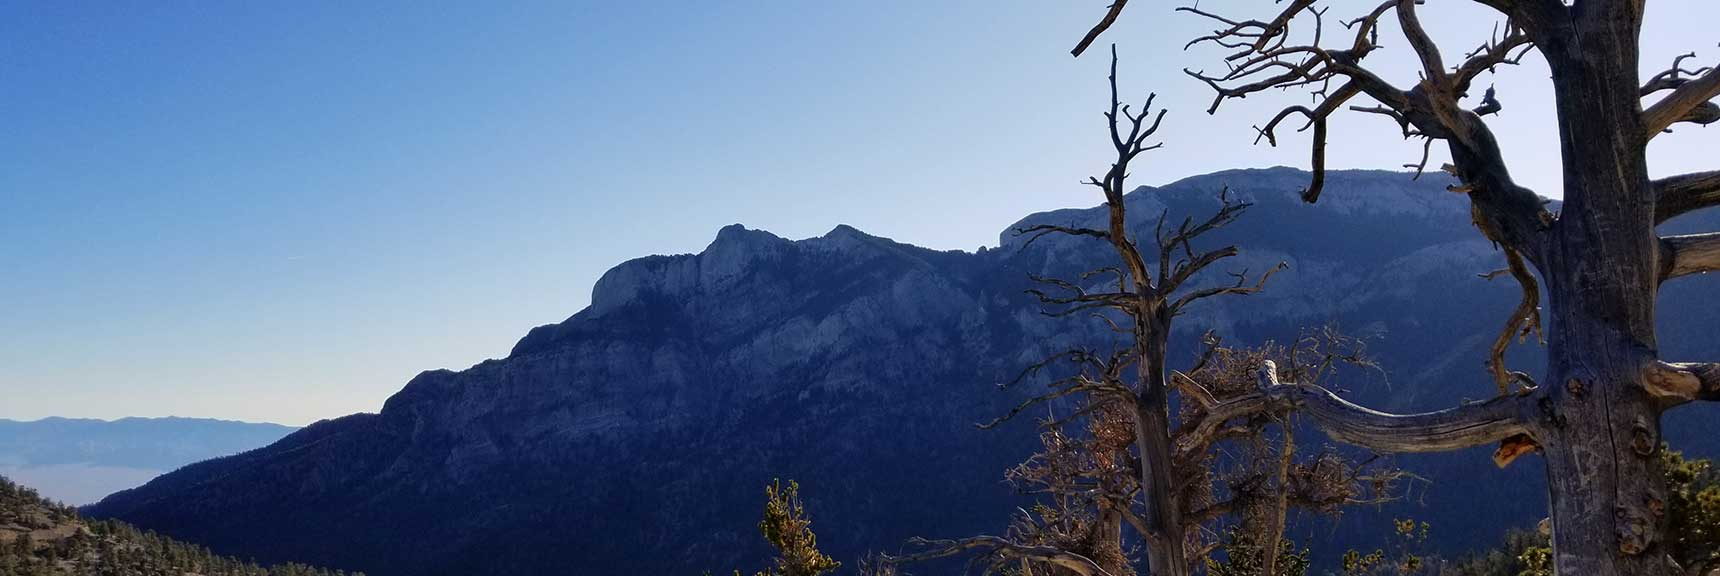 View of Mummy Mountain from the Bristlecone Pine Trail in Lee Canyon, Mt. Charleston Wilderness, Nevada